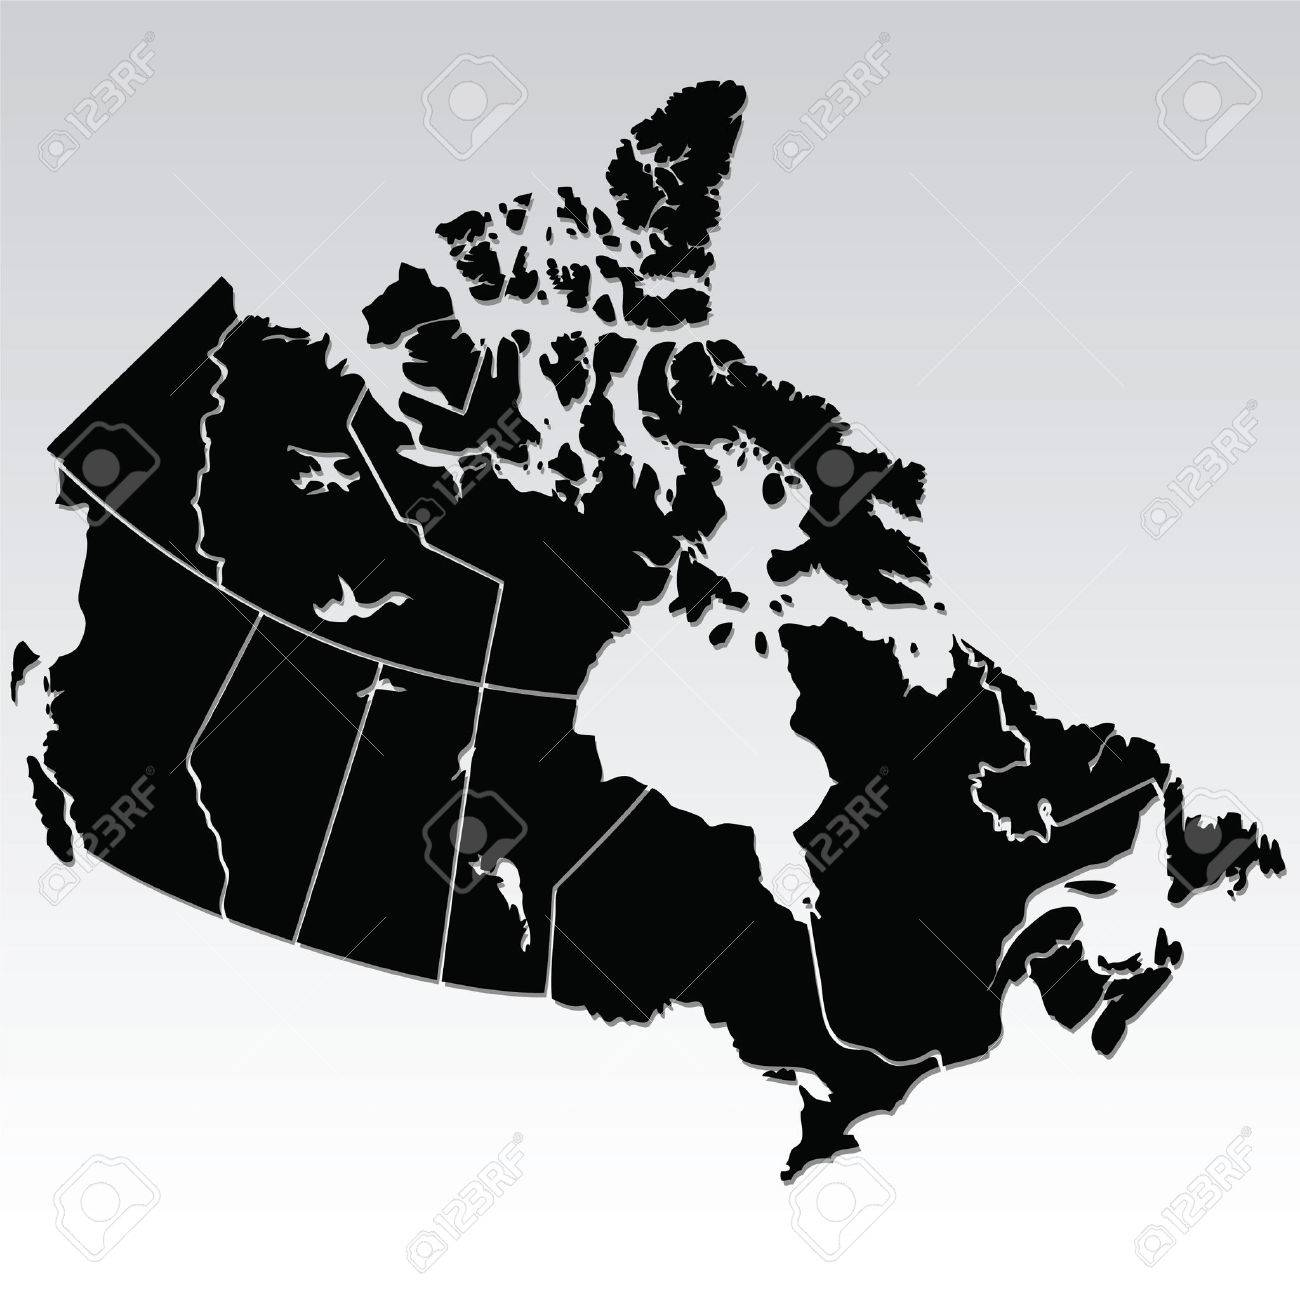 map of canada Stock Vector - 7433746